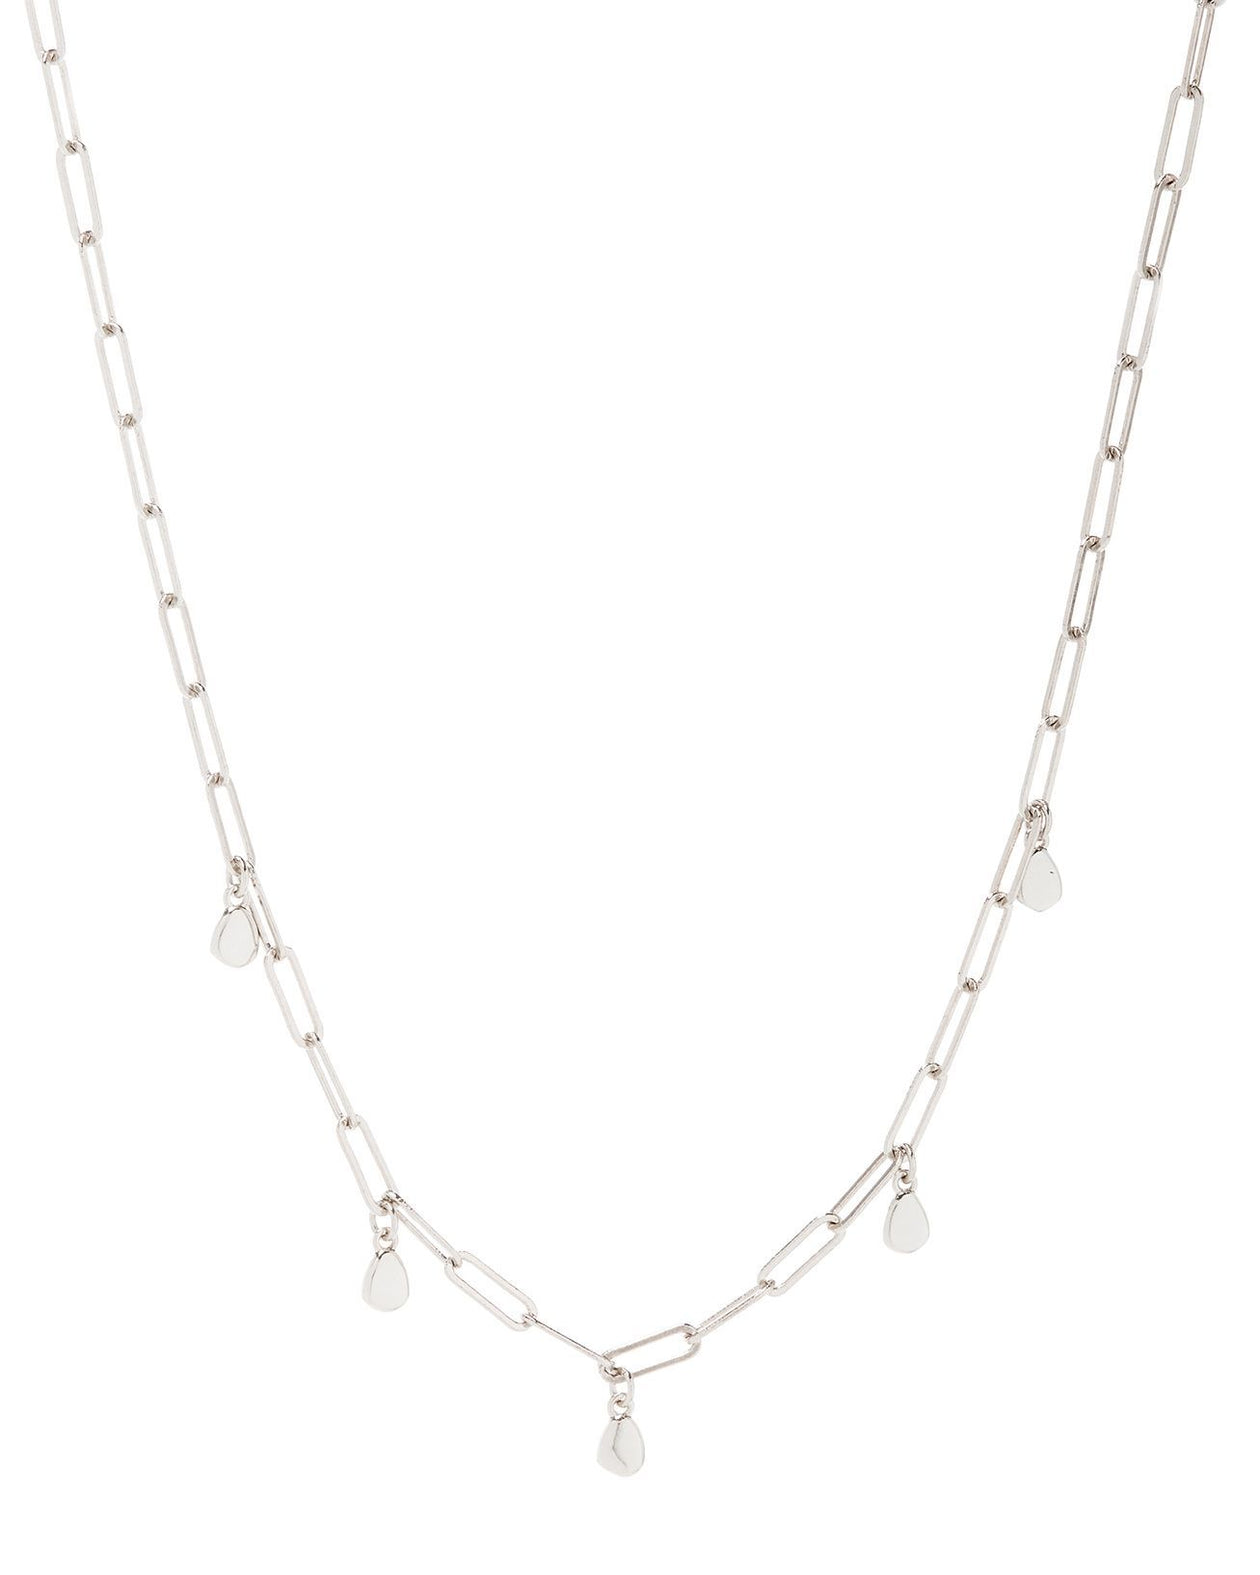 Golden Nugget Shaker Necklace - Silver | Luv AJ Women's Jewelry